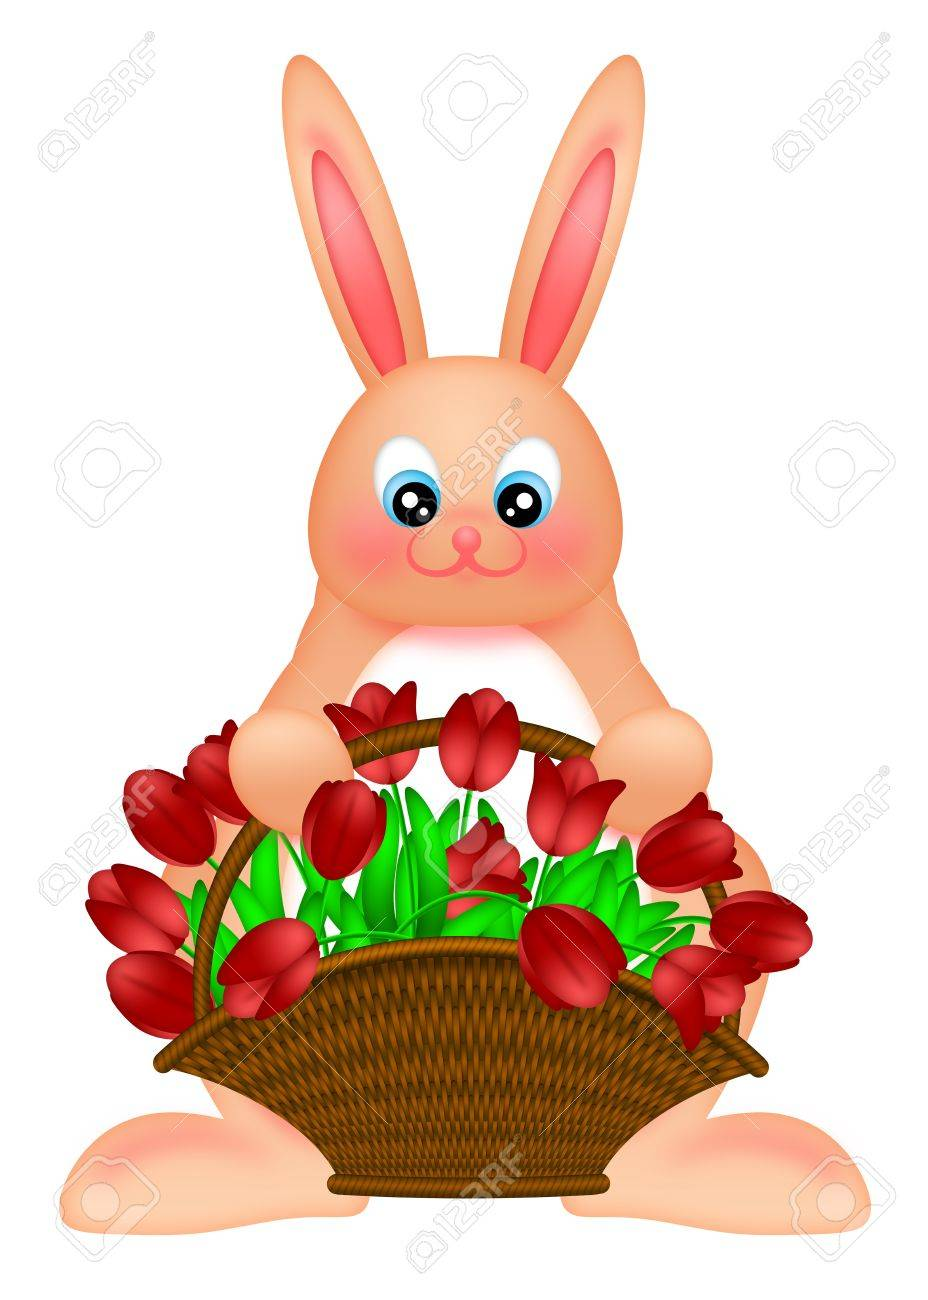 happy easter bunny rabbit holding a basket of red tulips flowers